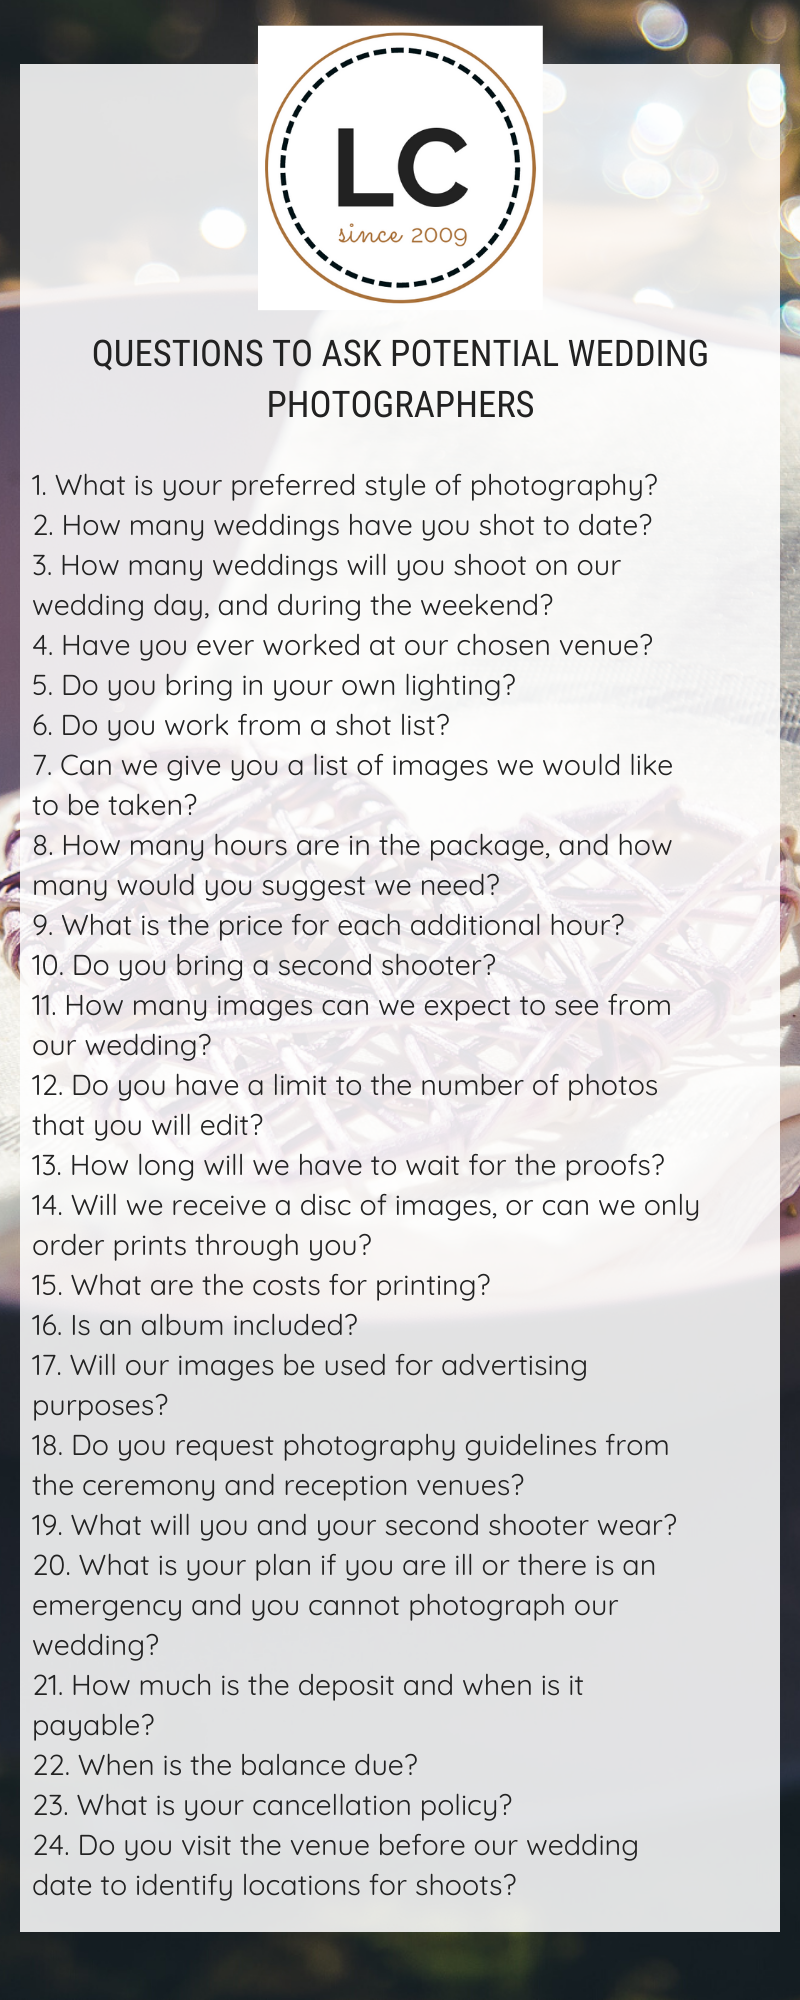 Questions to make the shifting process easier #weddingphotography #weddingphotographer #santiekorf #laughingchefs #southafricanweddings